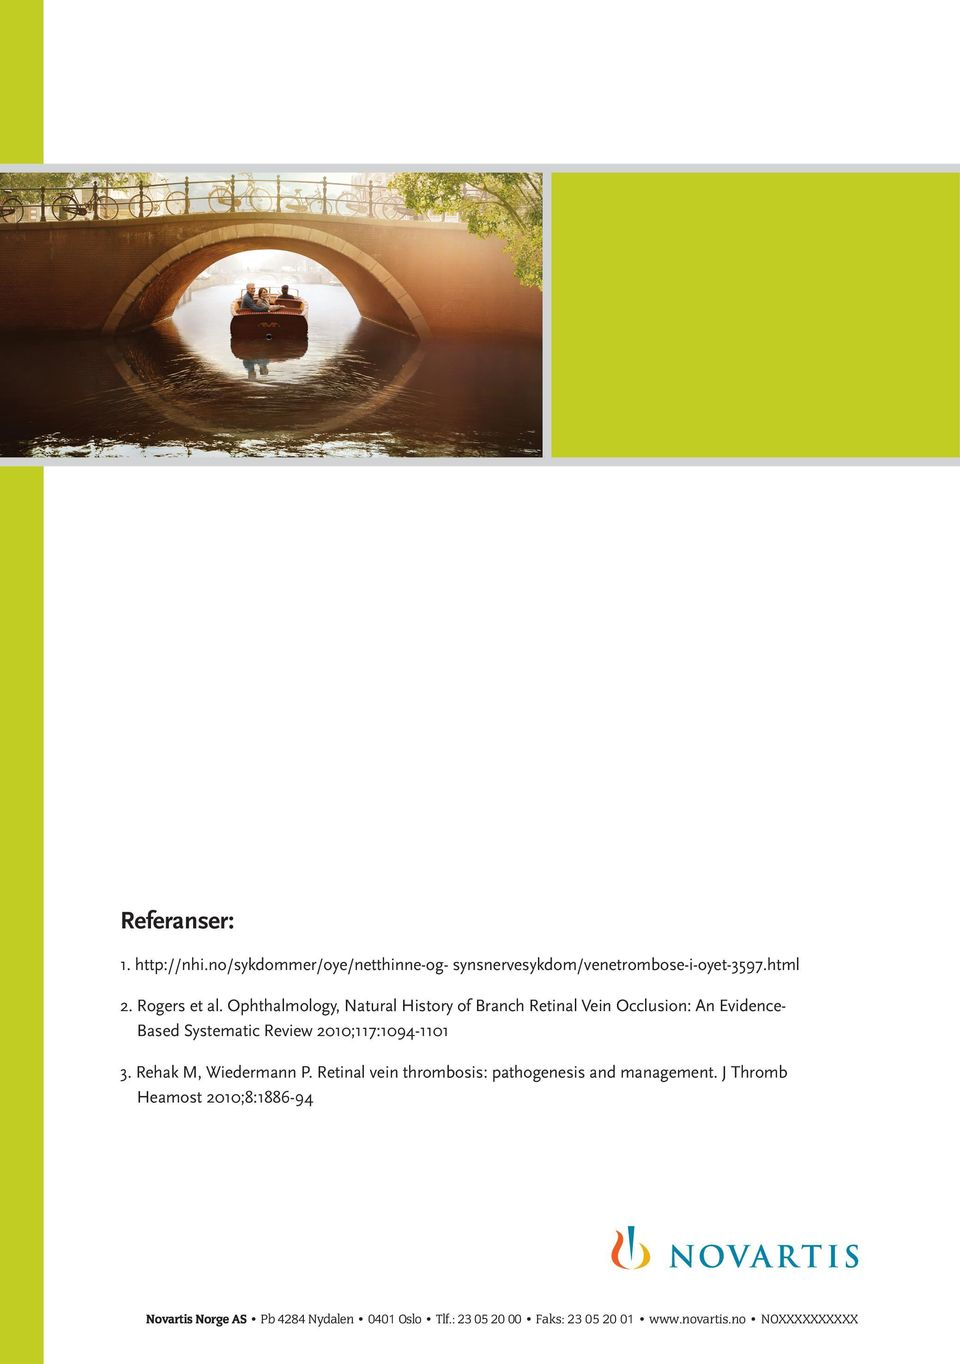 Ophthalmology, Natural History of Branch Retinal Vein Occlusion: An Evidence- Based Systematic Review